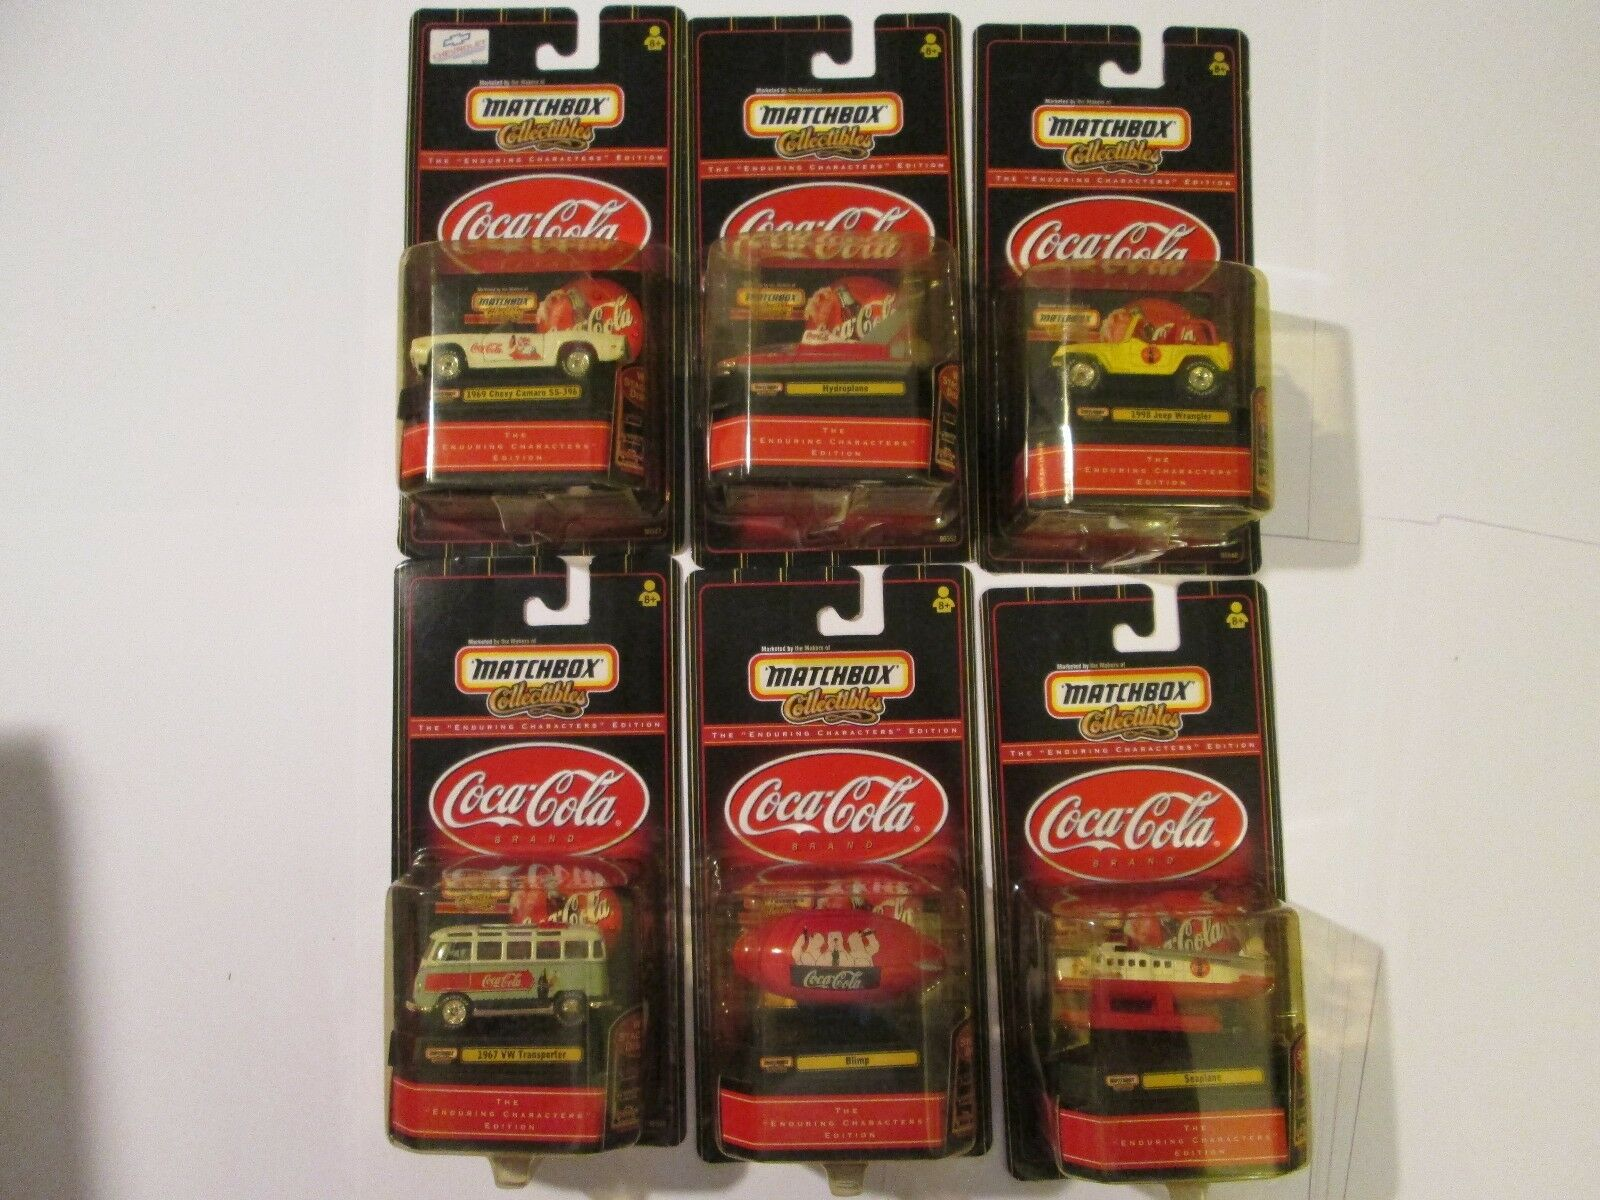 Matchbox Coca-Cola The Enduring Character Edition Set of 6